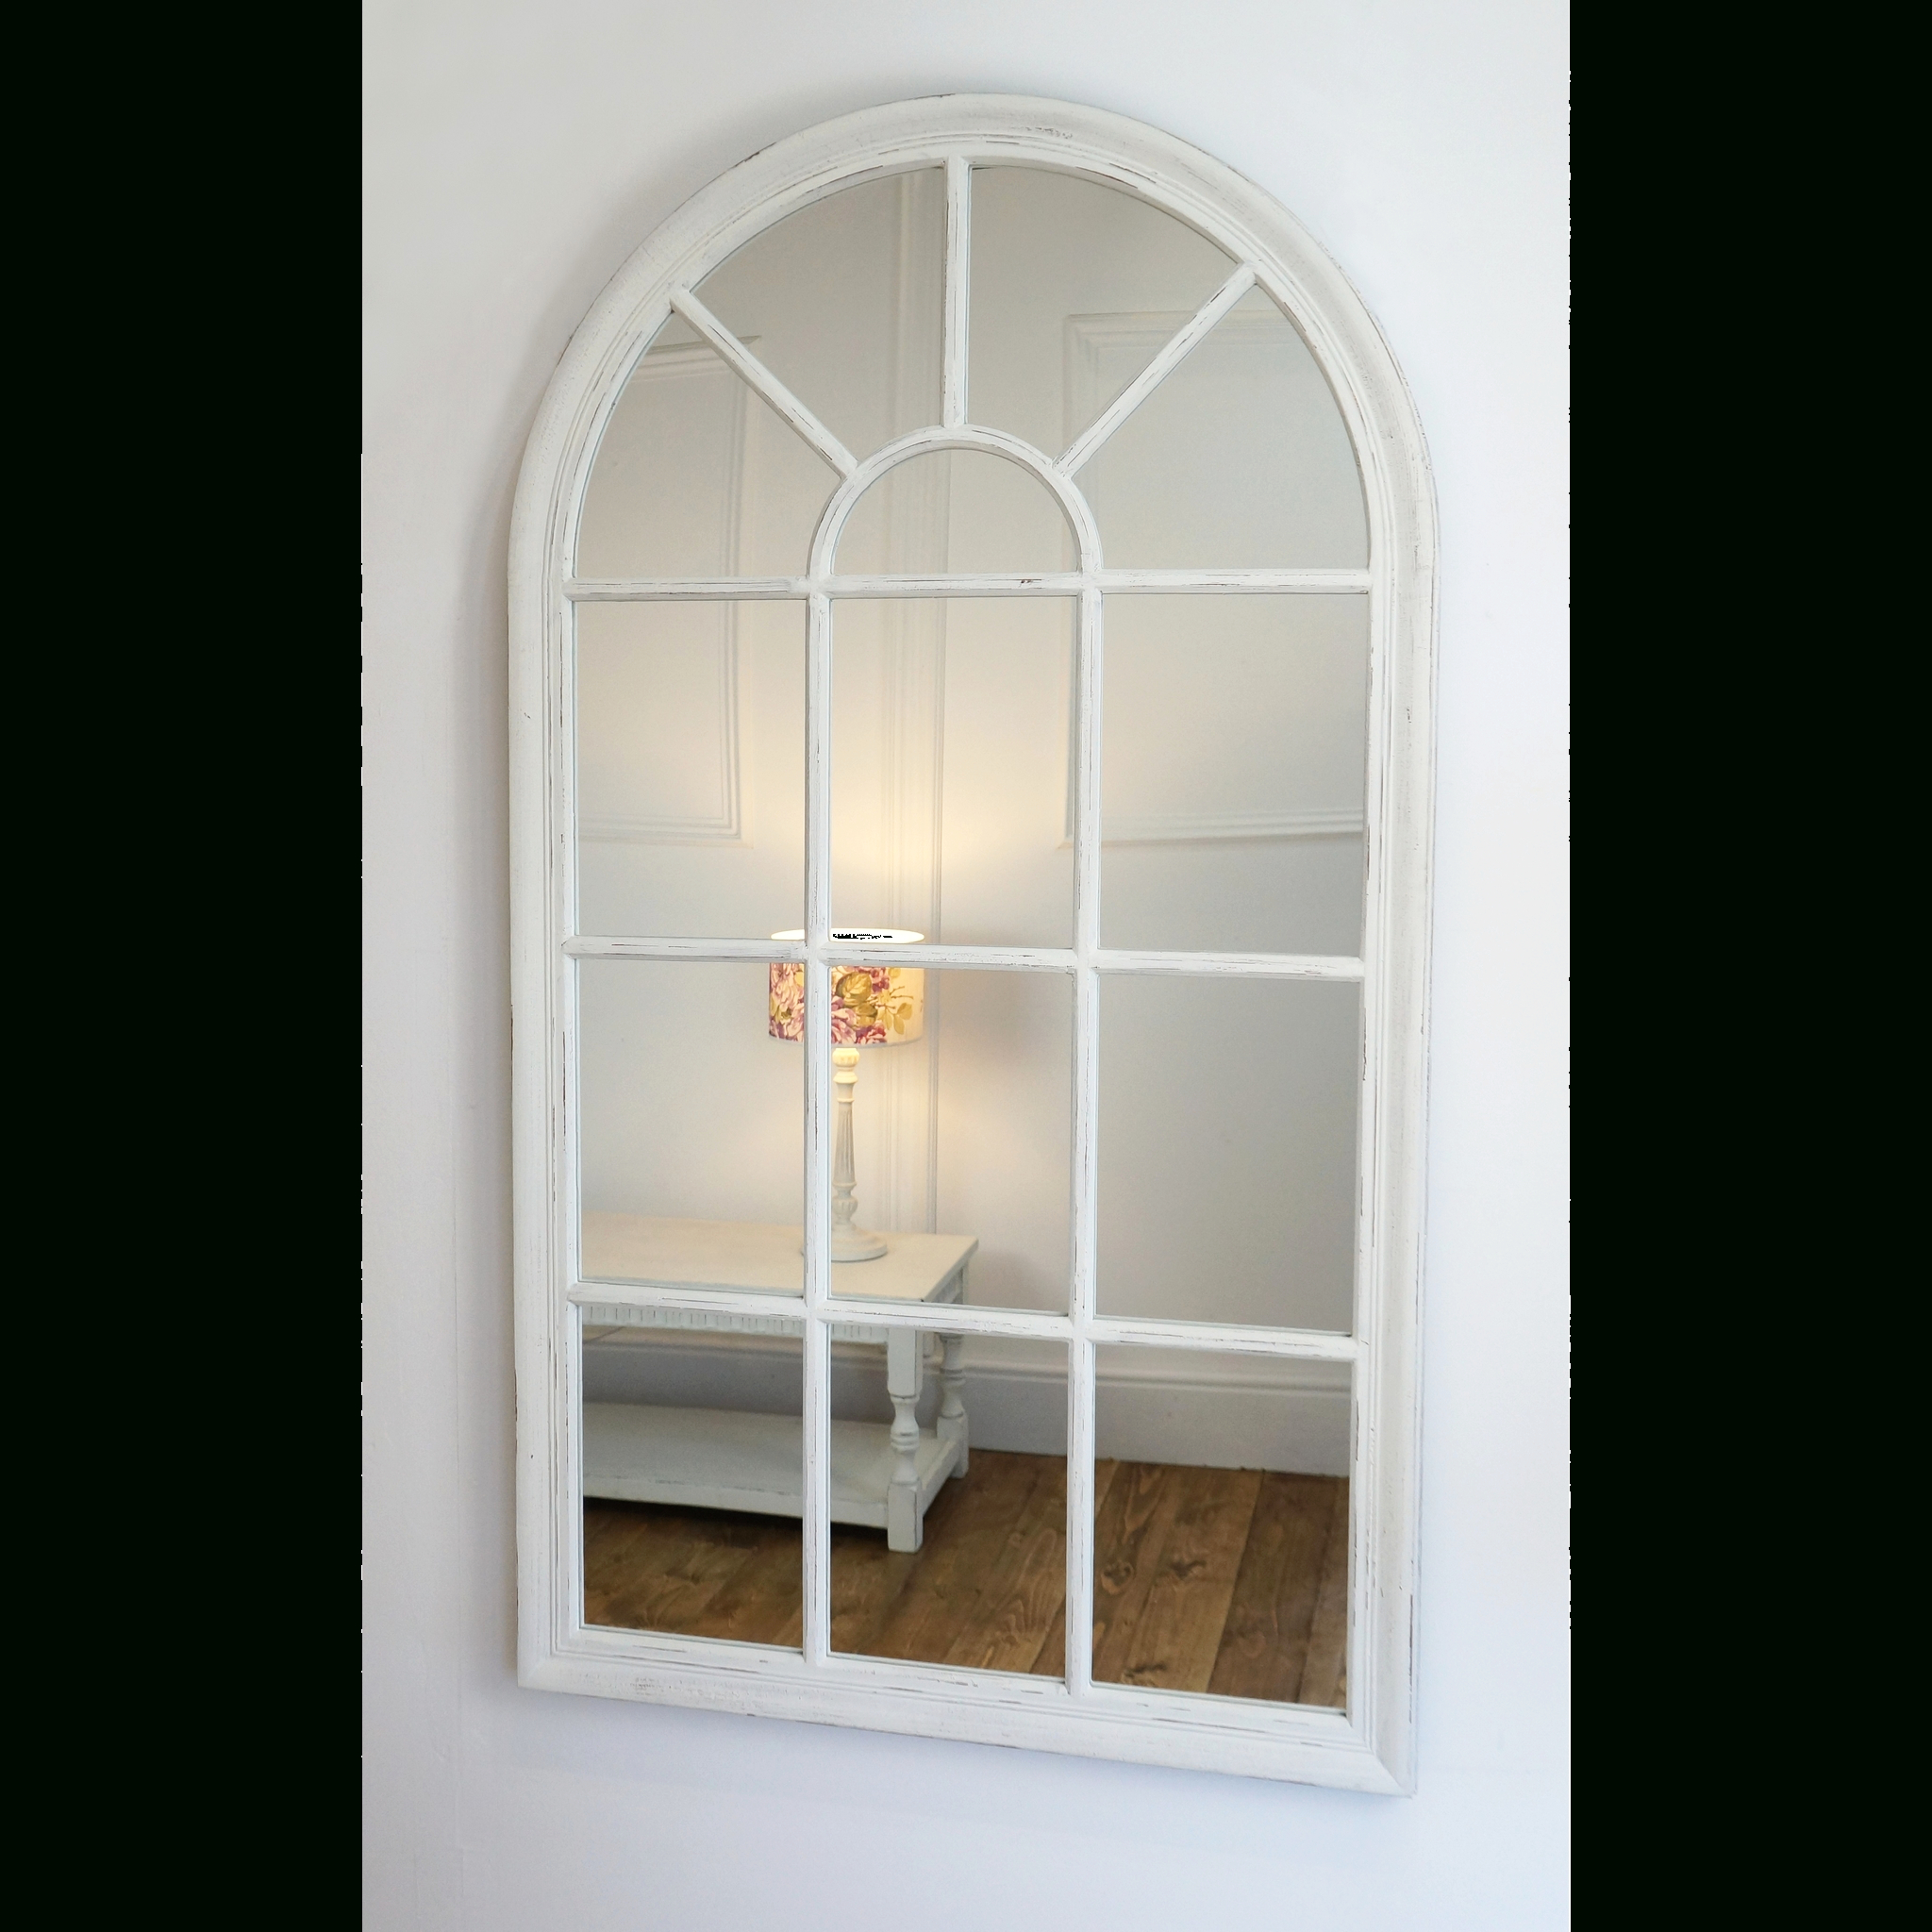 "Wall Mirrors Without Frame Pertaining To Most Popular Arabella – White Arched Window Mirror 40"" X 24"" (100cm X (View 8 of 20)"